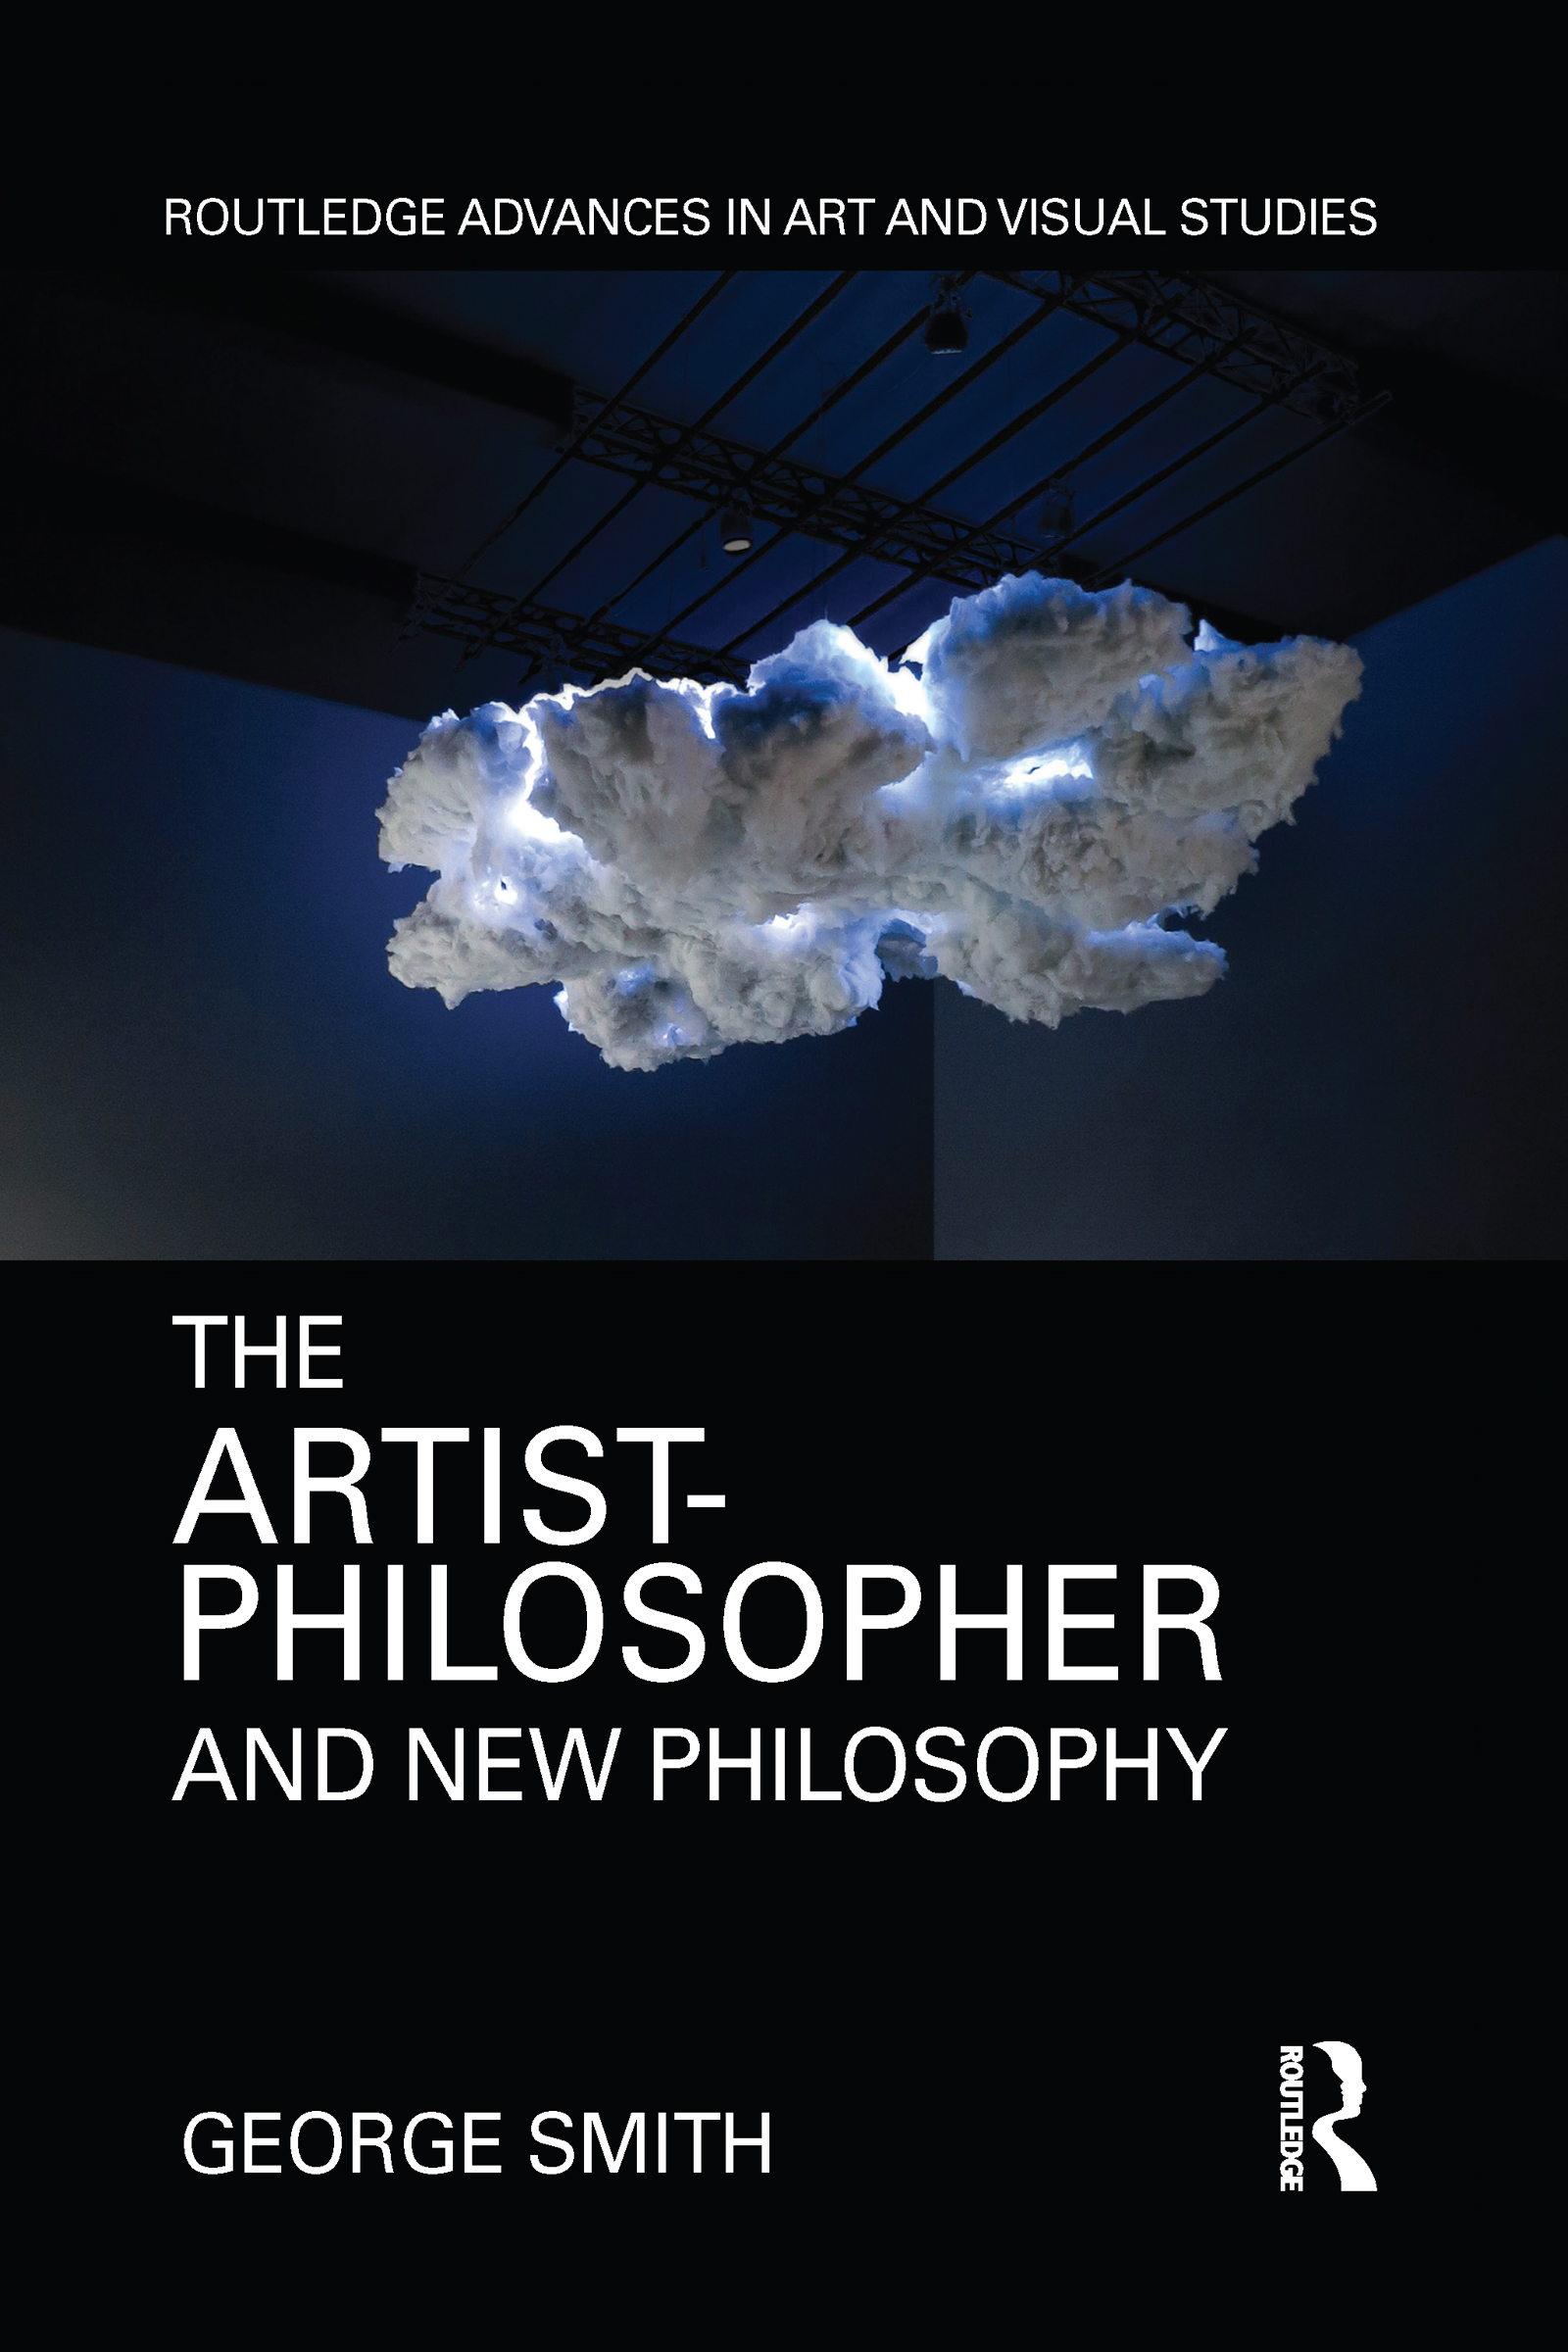 The Artist-Philosopher and New Philosophy